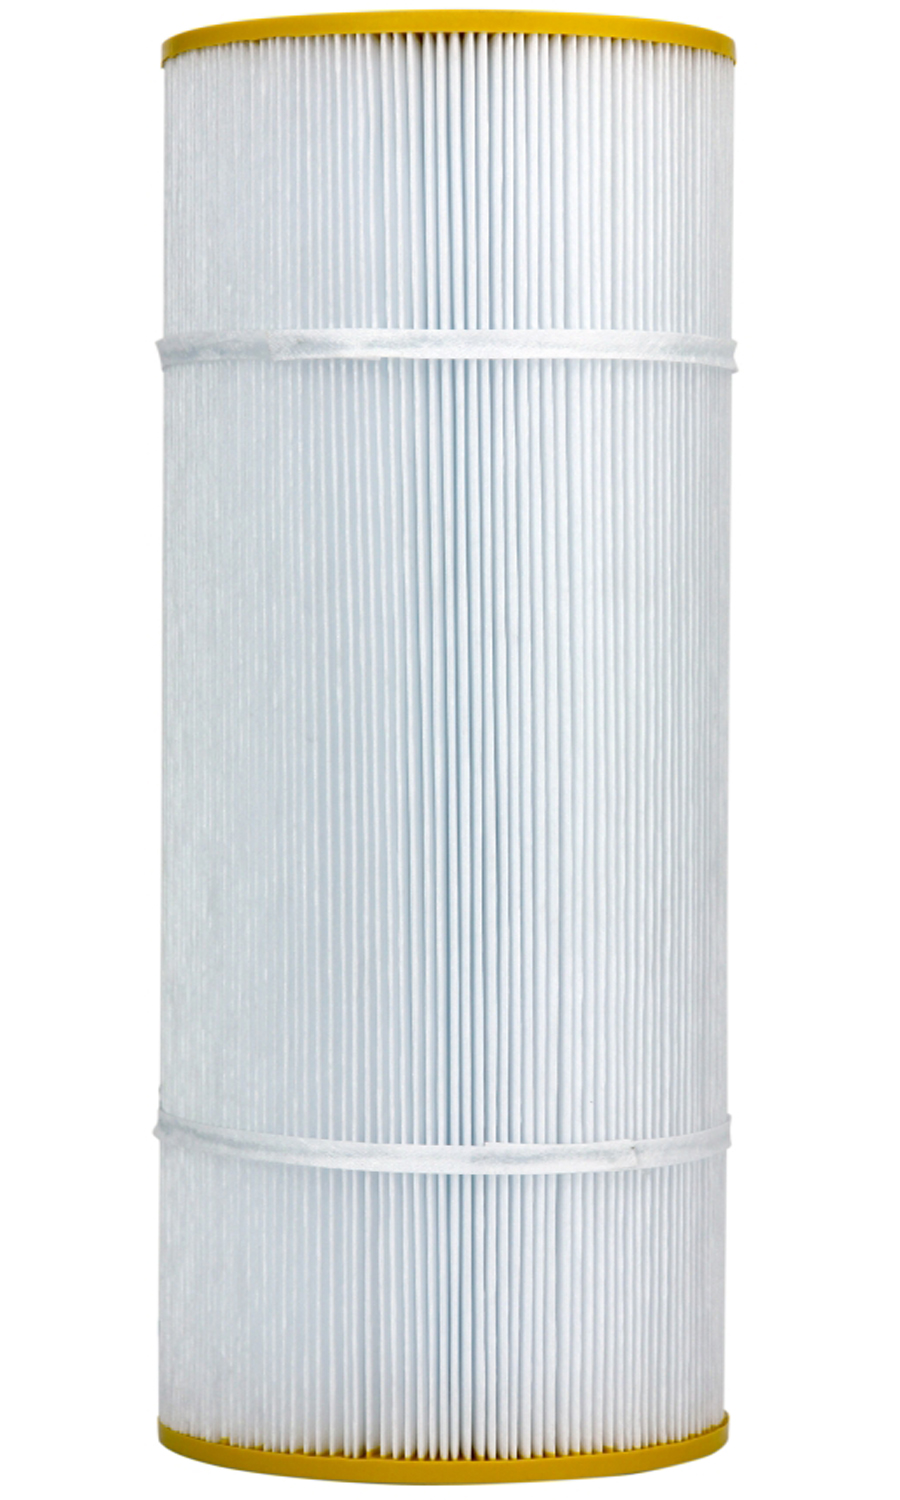 Swimming Pool Cartridge Filter For Hayward Super Star Clear C4020 C4000 Ebay